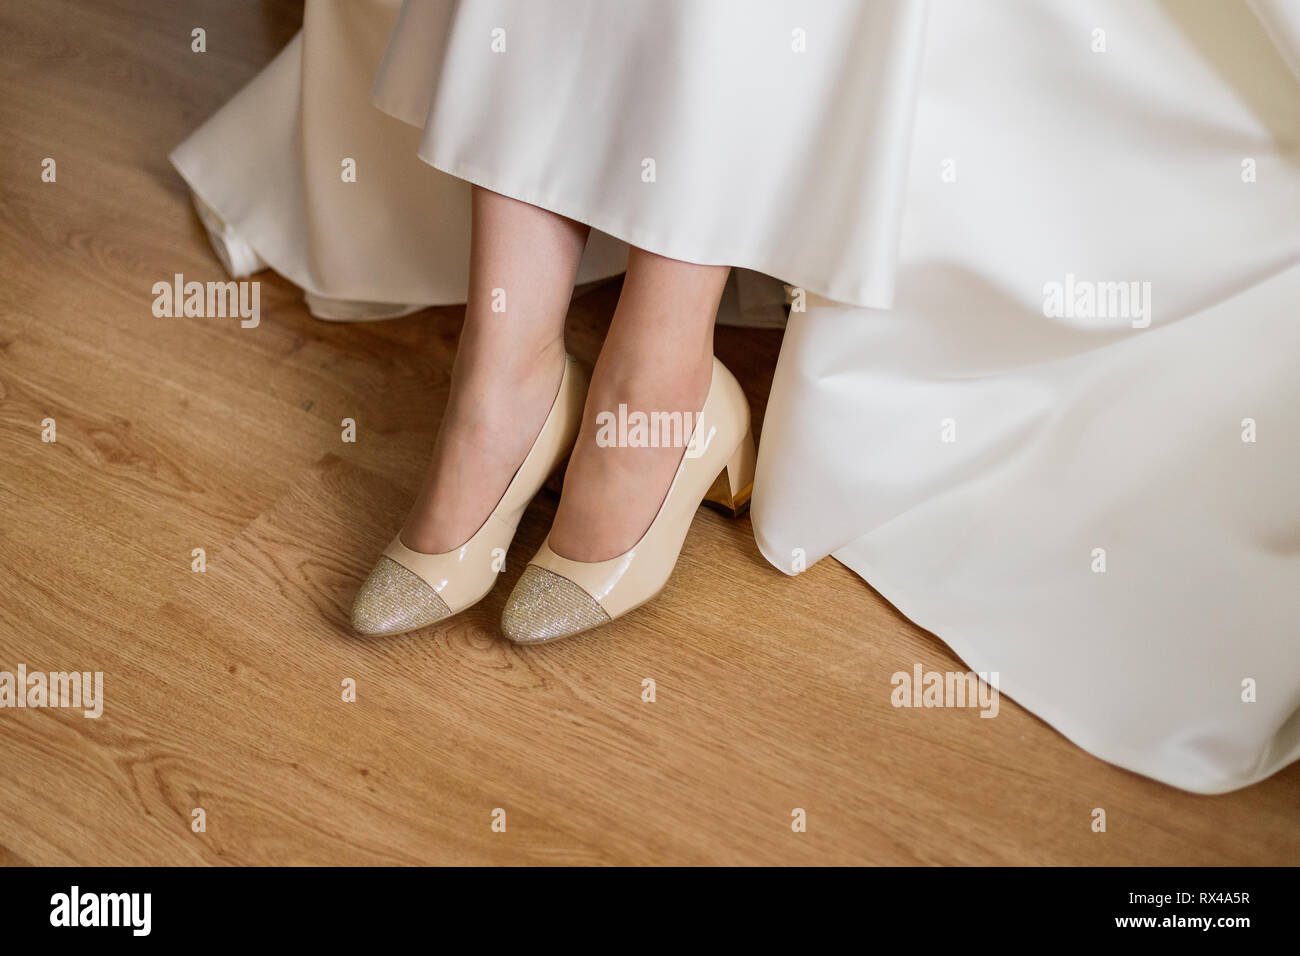 Closeup of bare feet of a bride on a wooden surface. Wedding background with free place for text - Stock Image